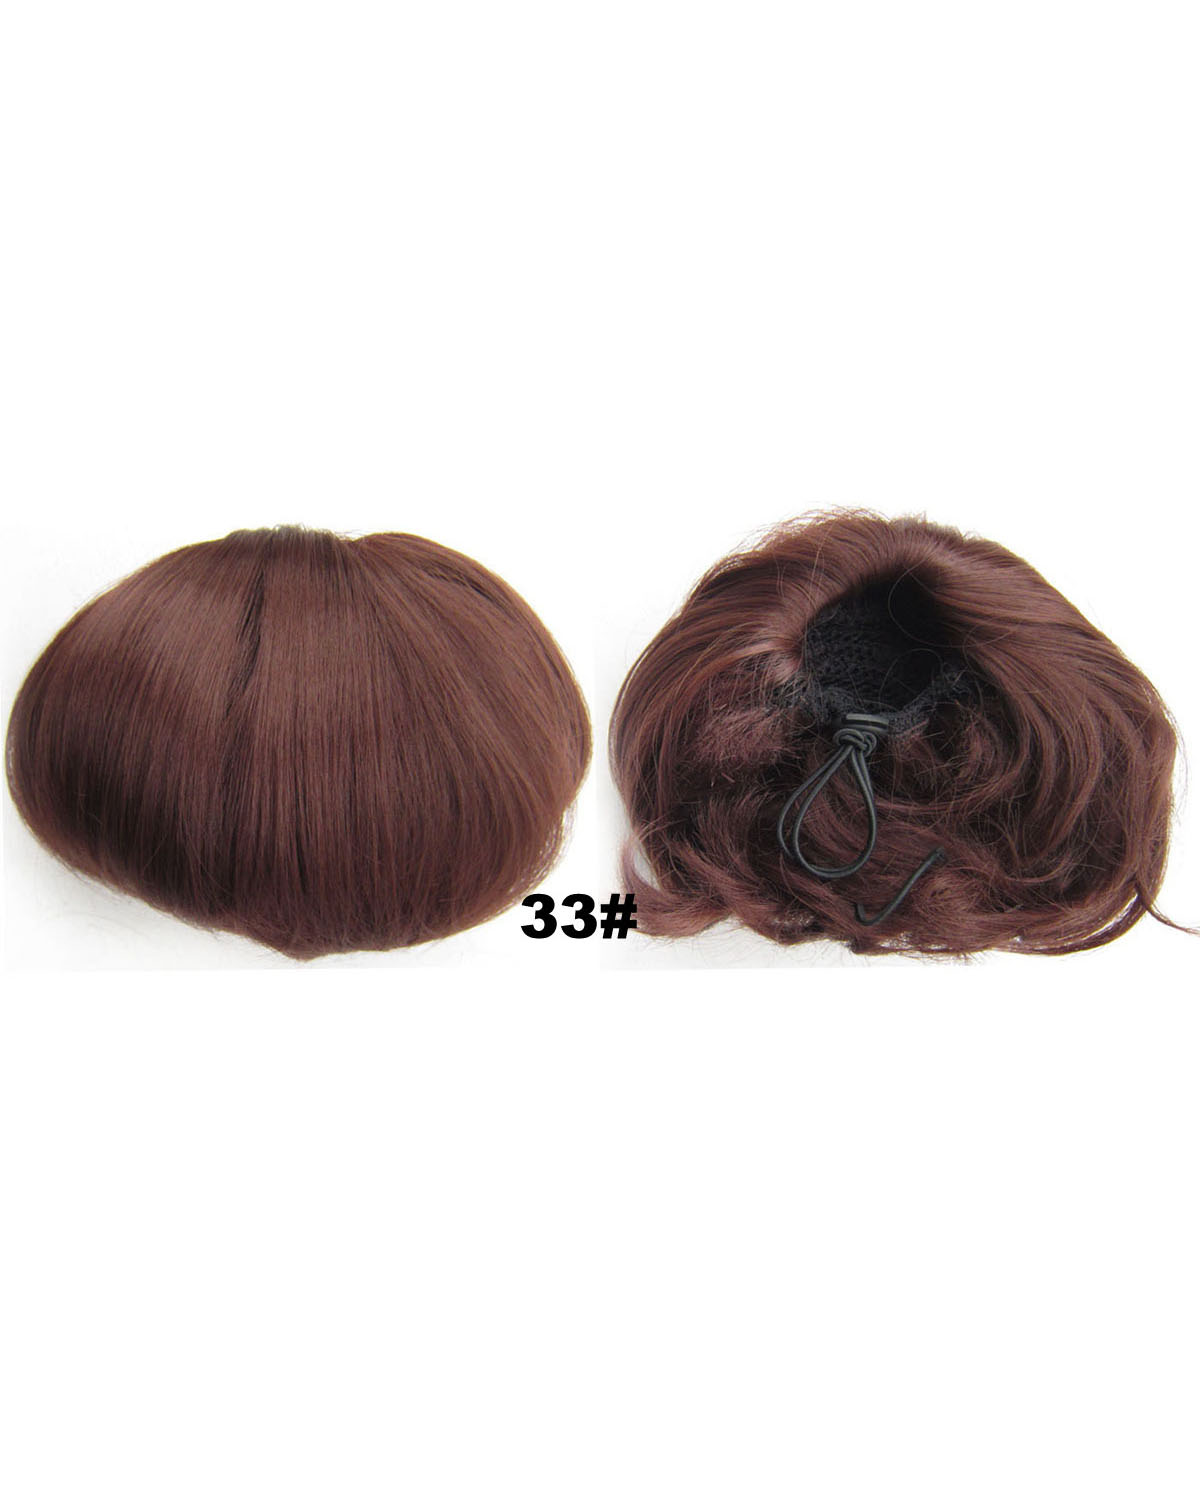 Ladies Glamour Straight Short Hair Buns Drawstring Synthetic Hair Extension Bride Scrunchies  33#